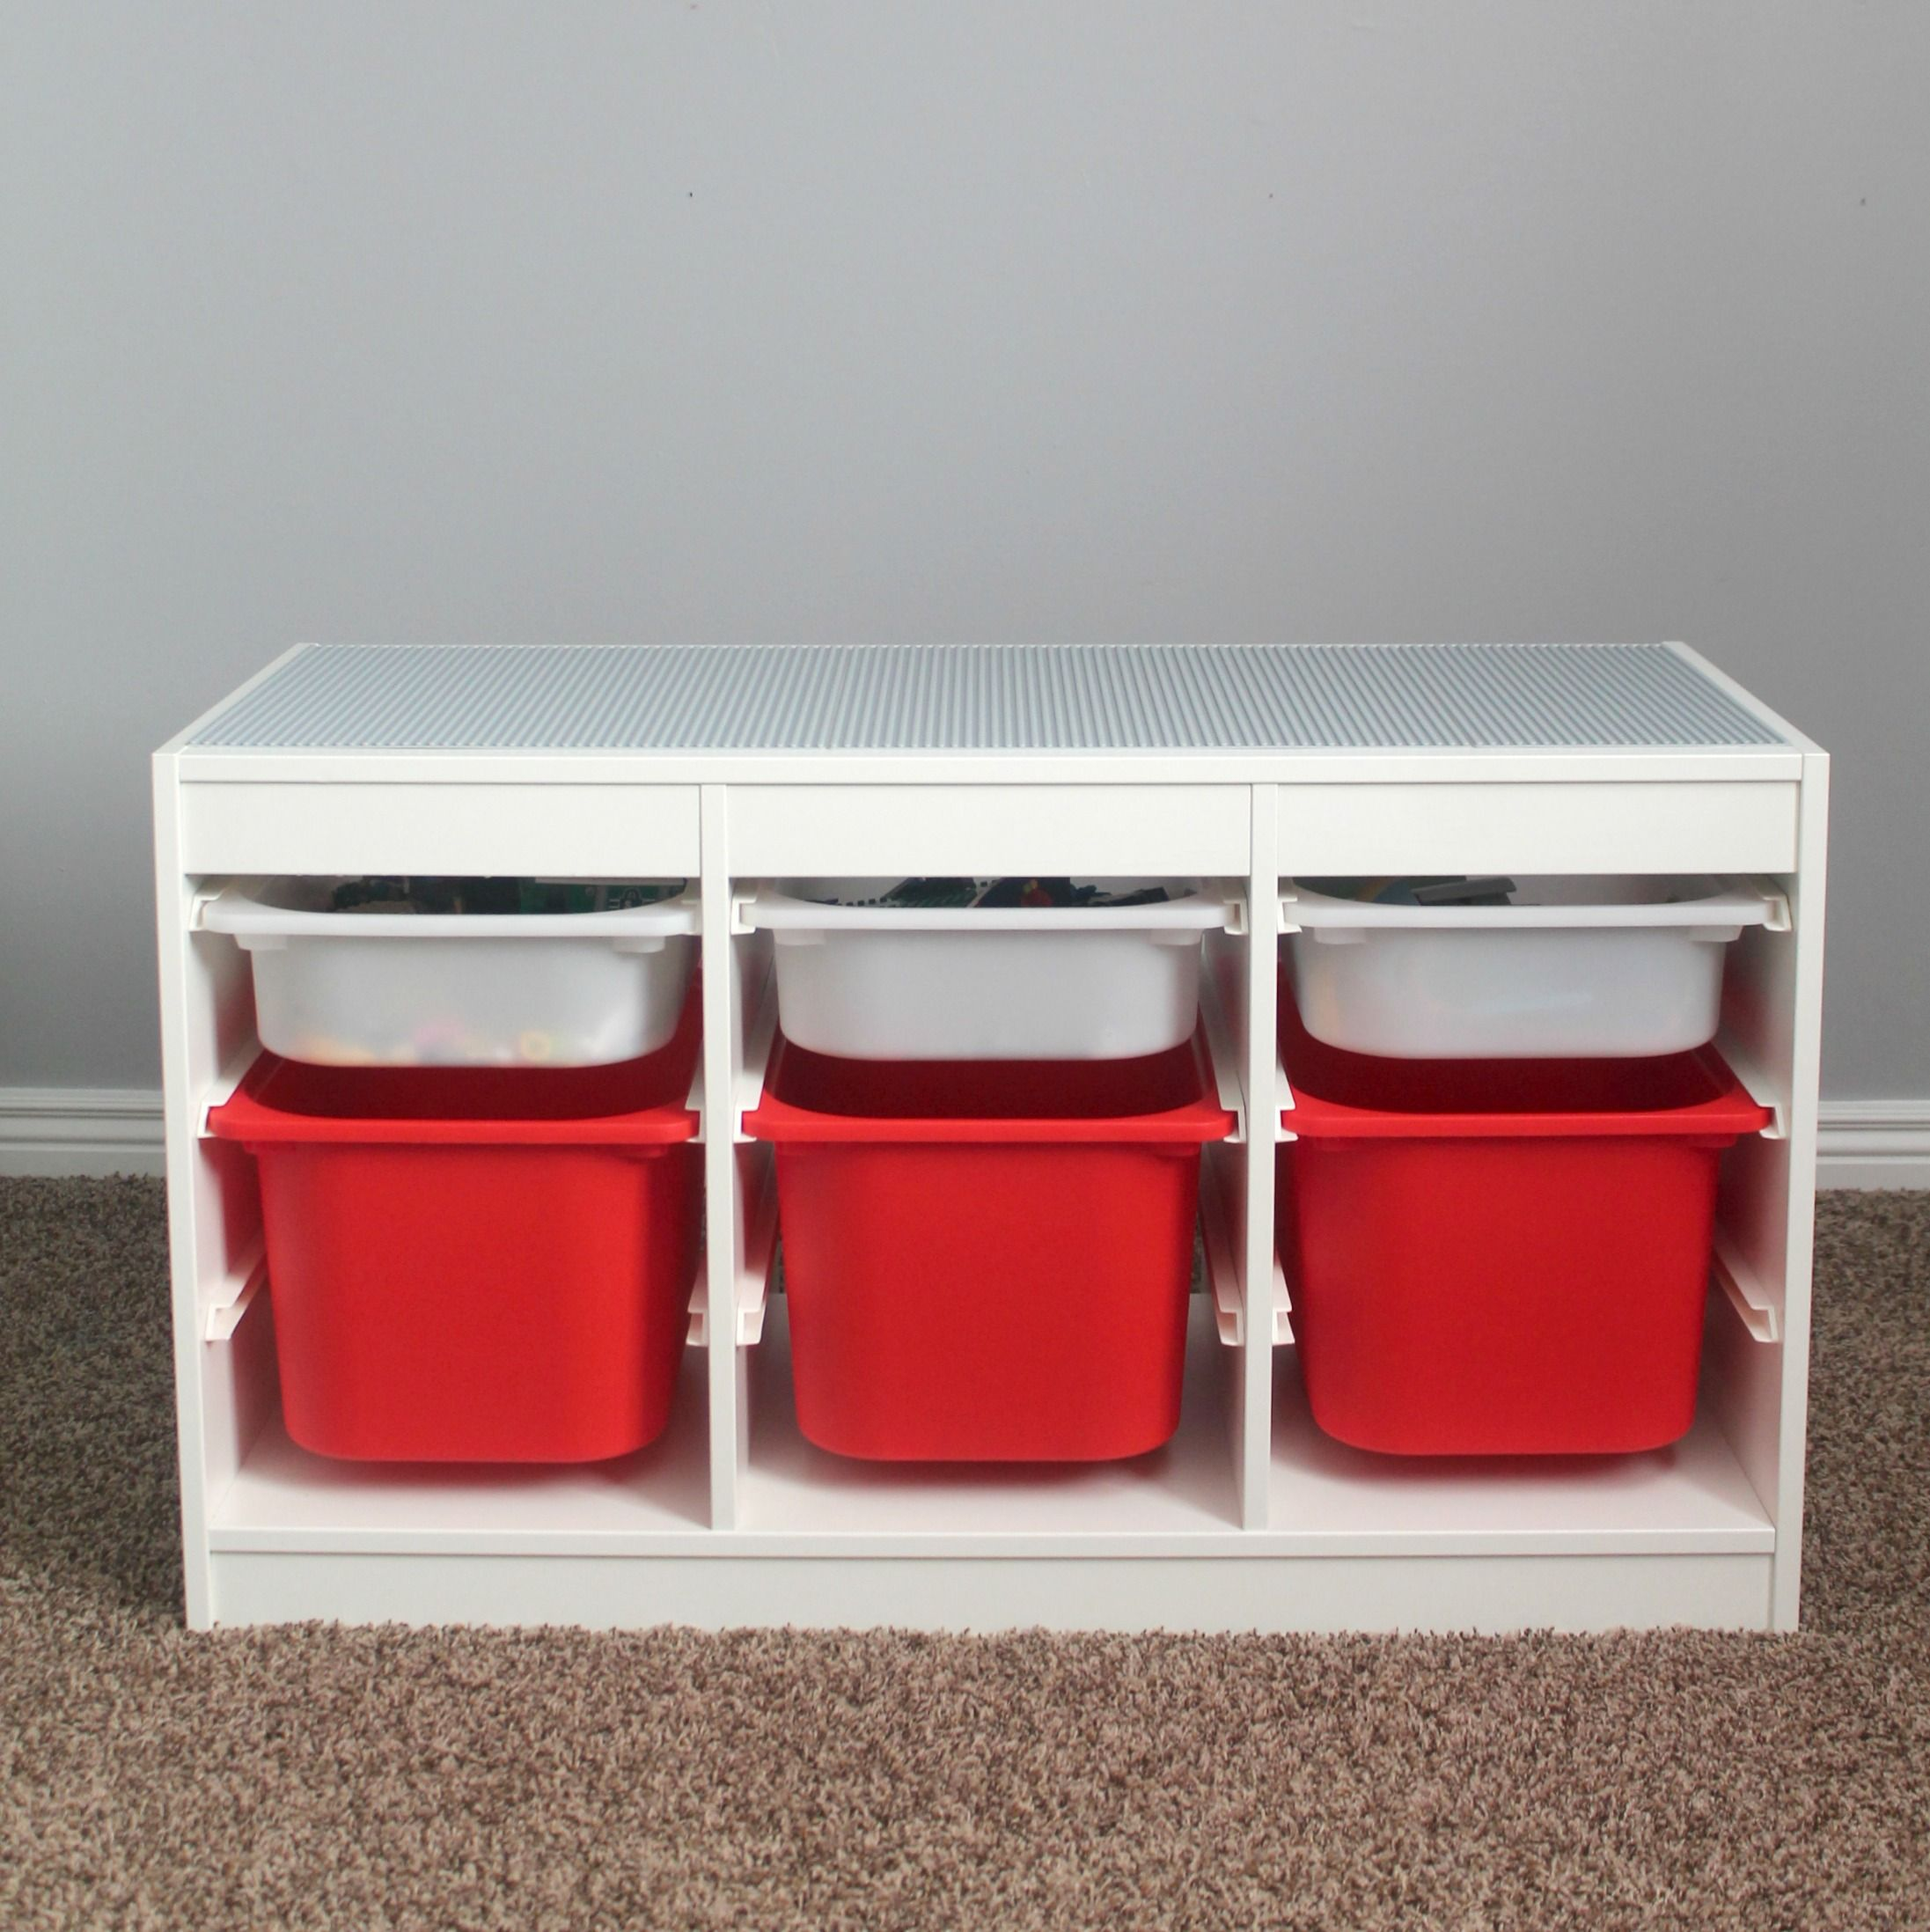 finished lego table with storage gift ideas pinterest rangement lego lego and rangement. Black Bedroom Furniture Sets. Home Design Ideas